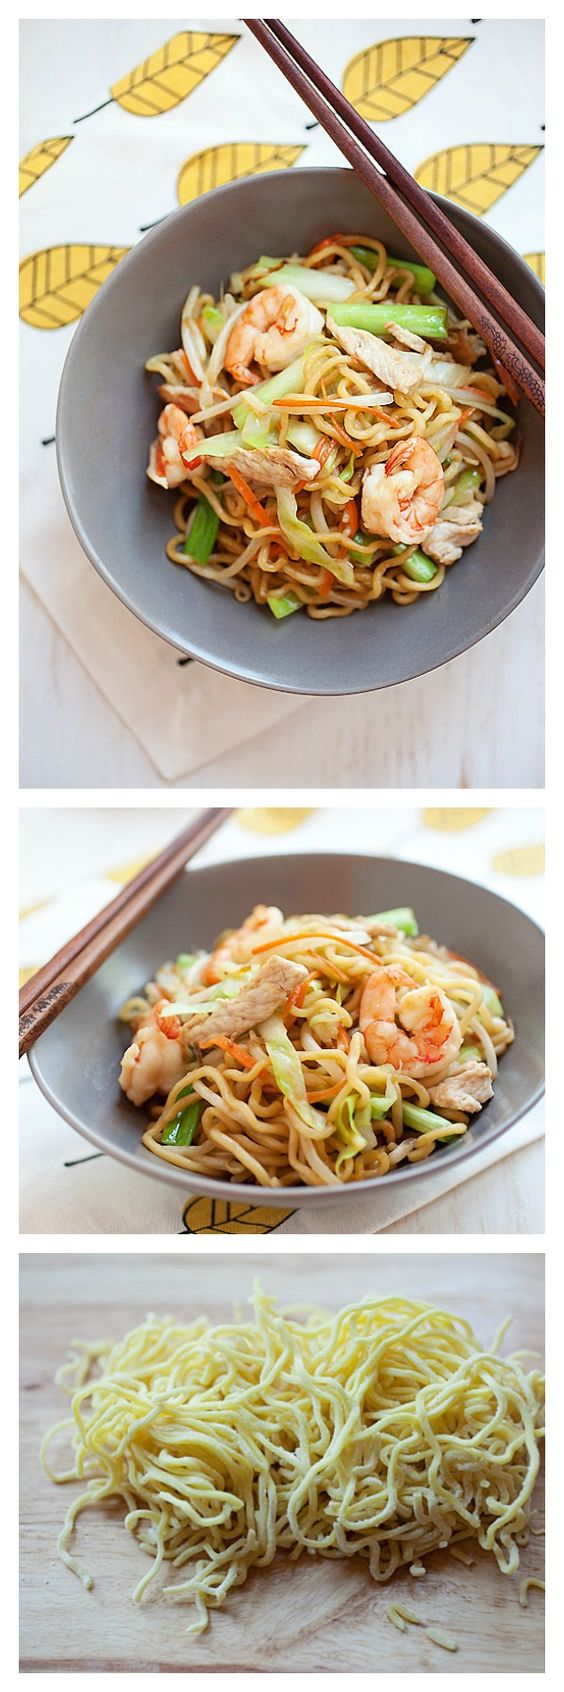 Chow Mein, or Chinese fried noodles, your favorite Chinese noodle dish ...